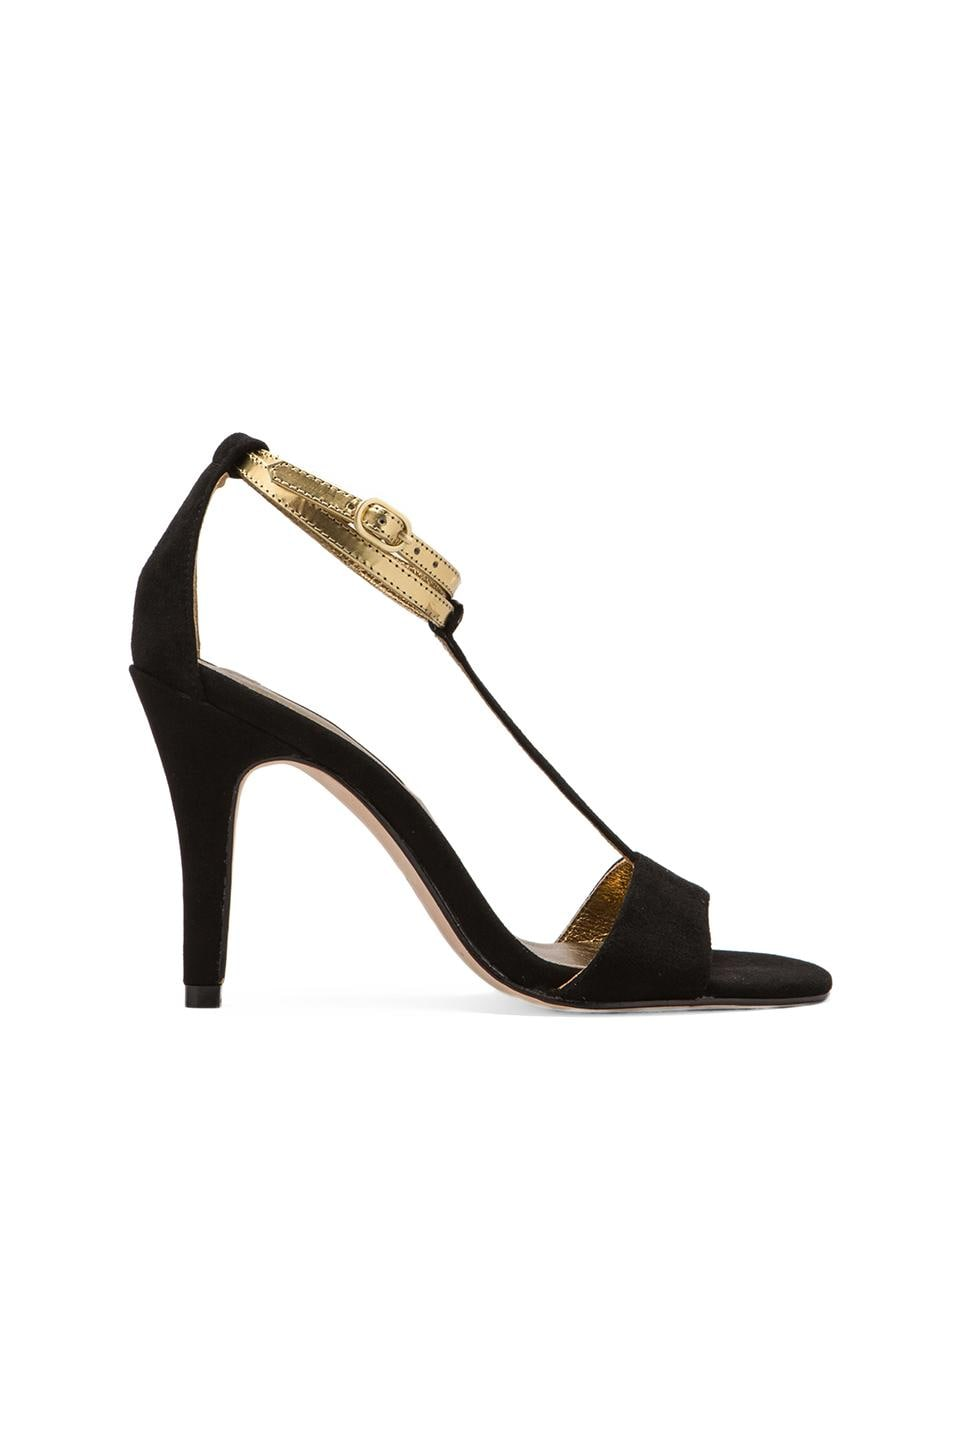 Twelfth Street By Cynthia Vincent Cynthia Vincent Makya Suede T-Strap in Black